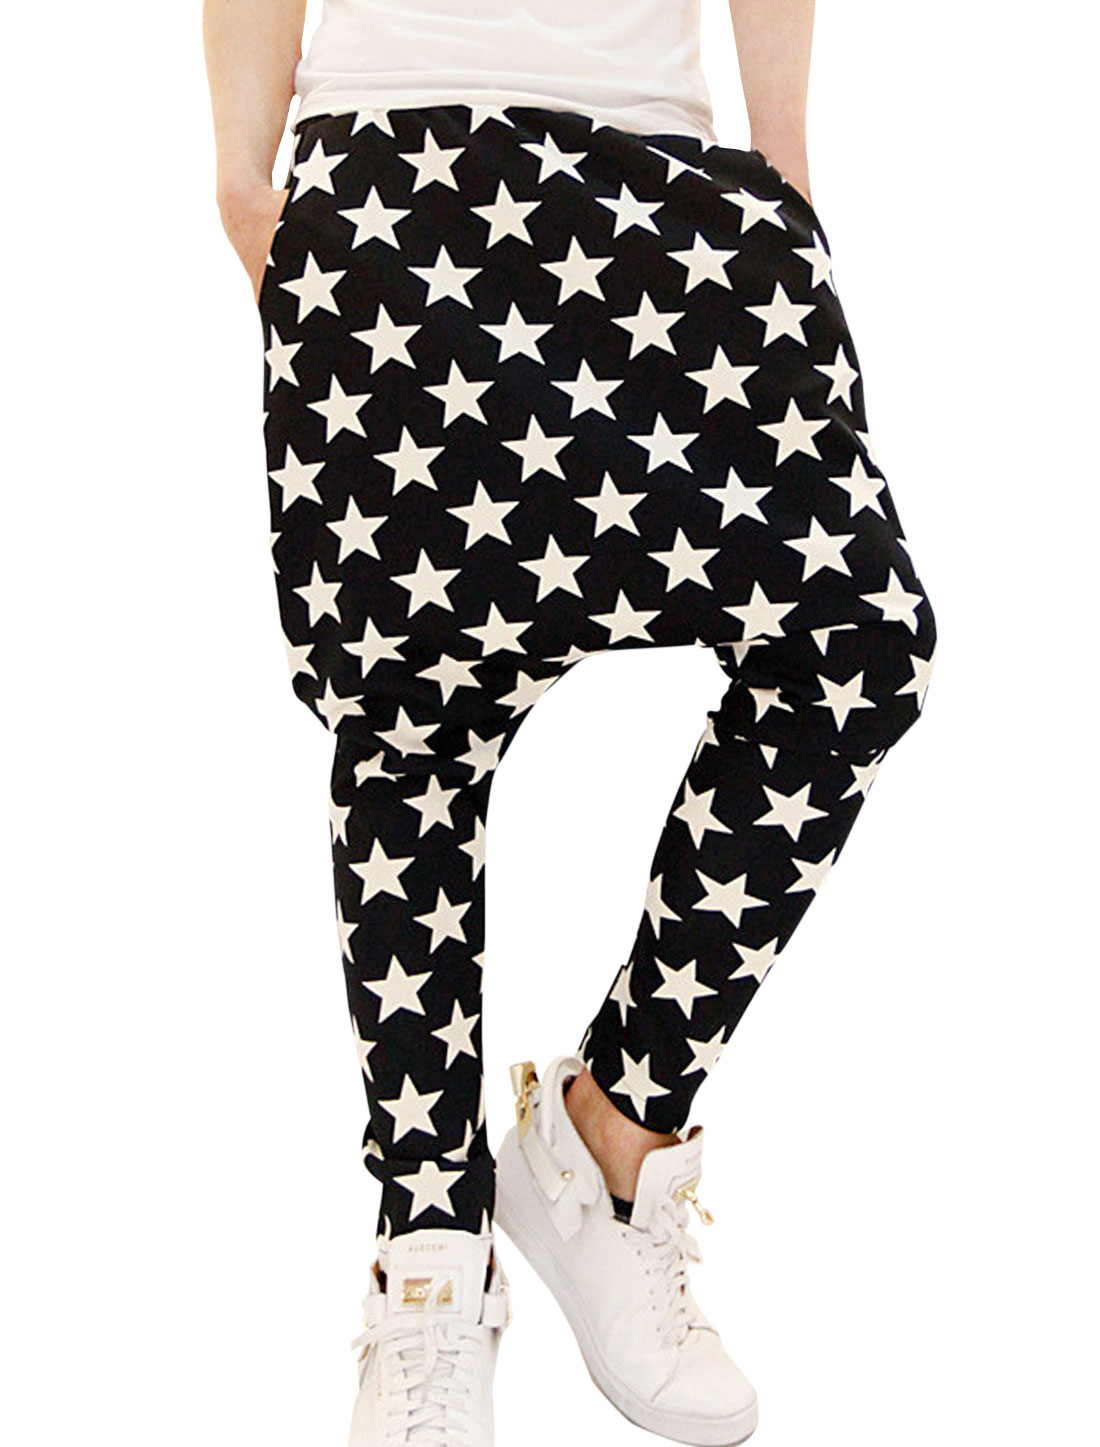 Men Black Stretchy Waist Star Design Supple Harem Pants W30